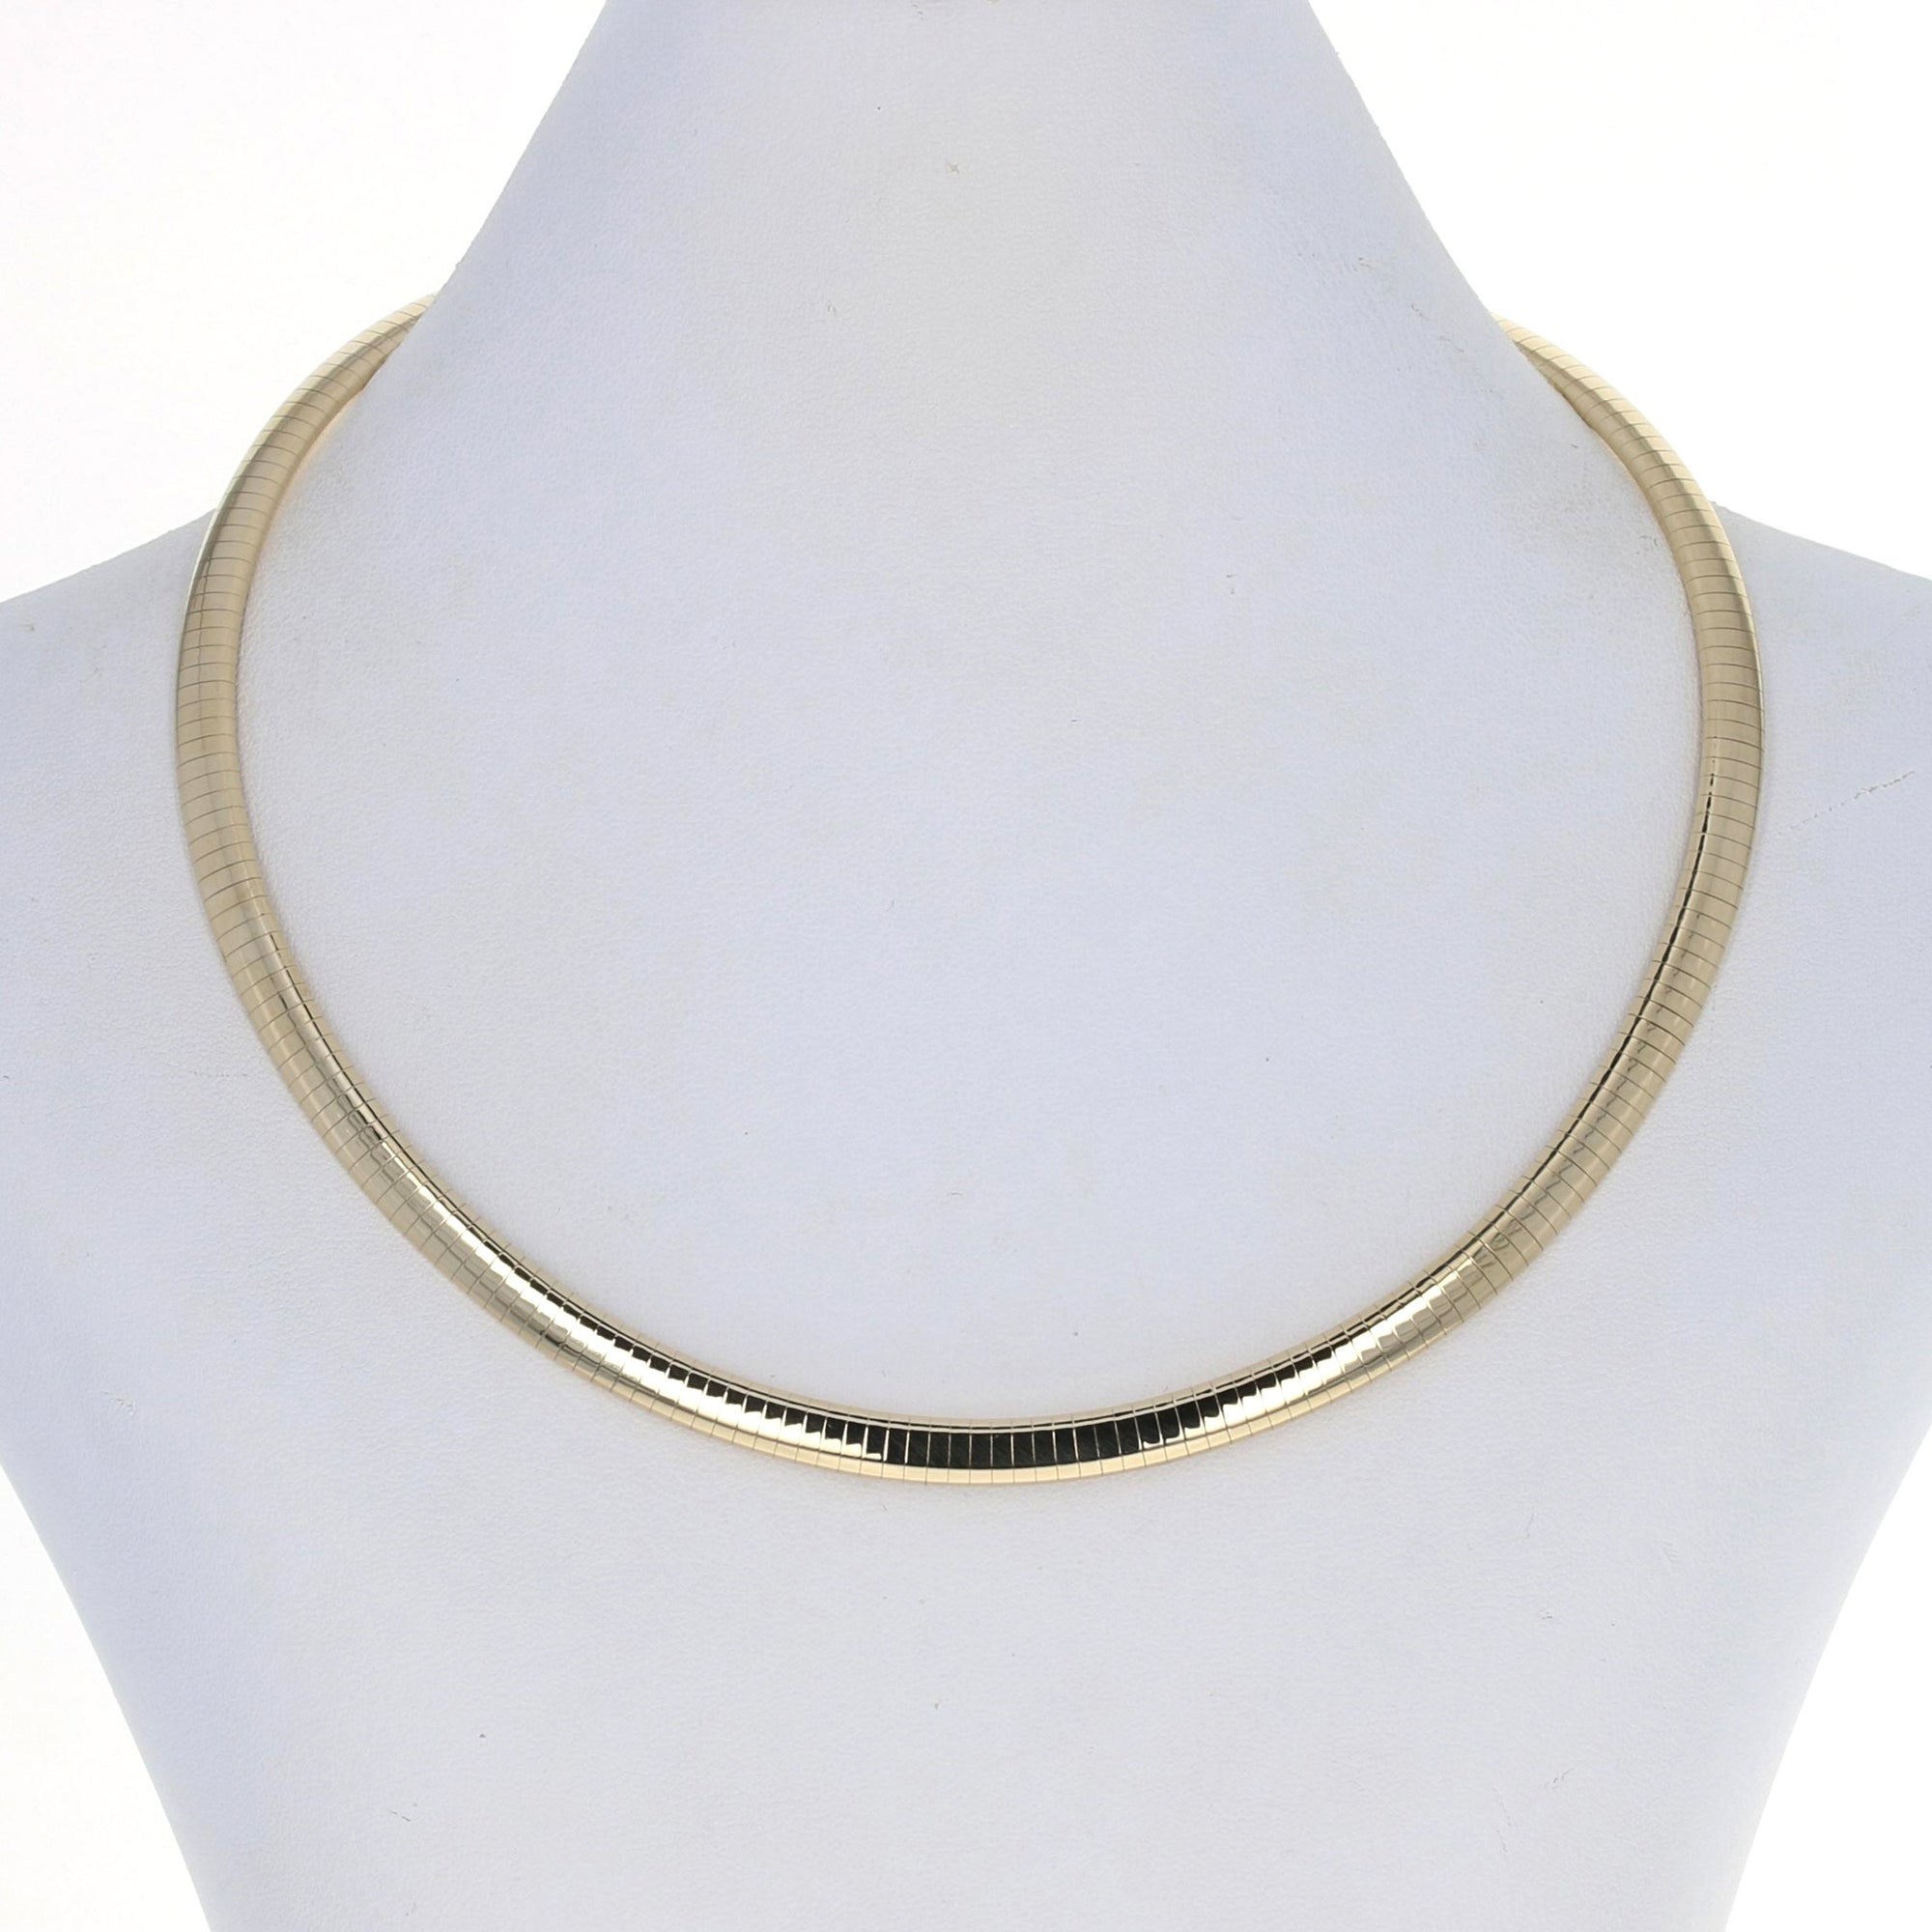 Omega Chain Necklace Yellow Gold